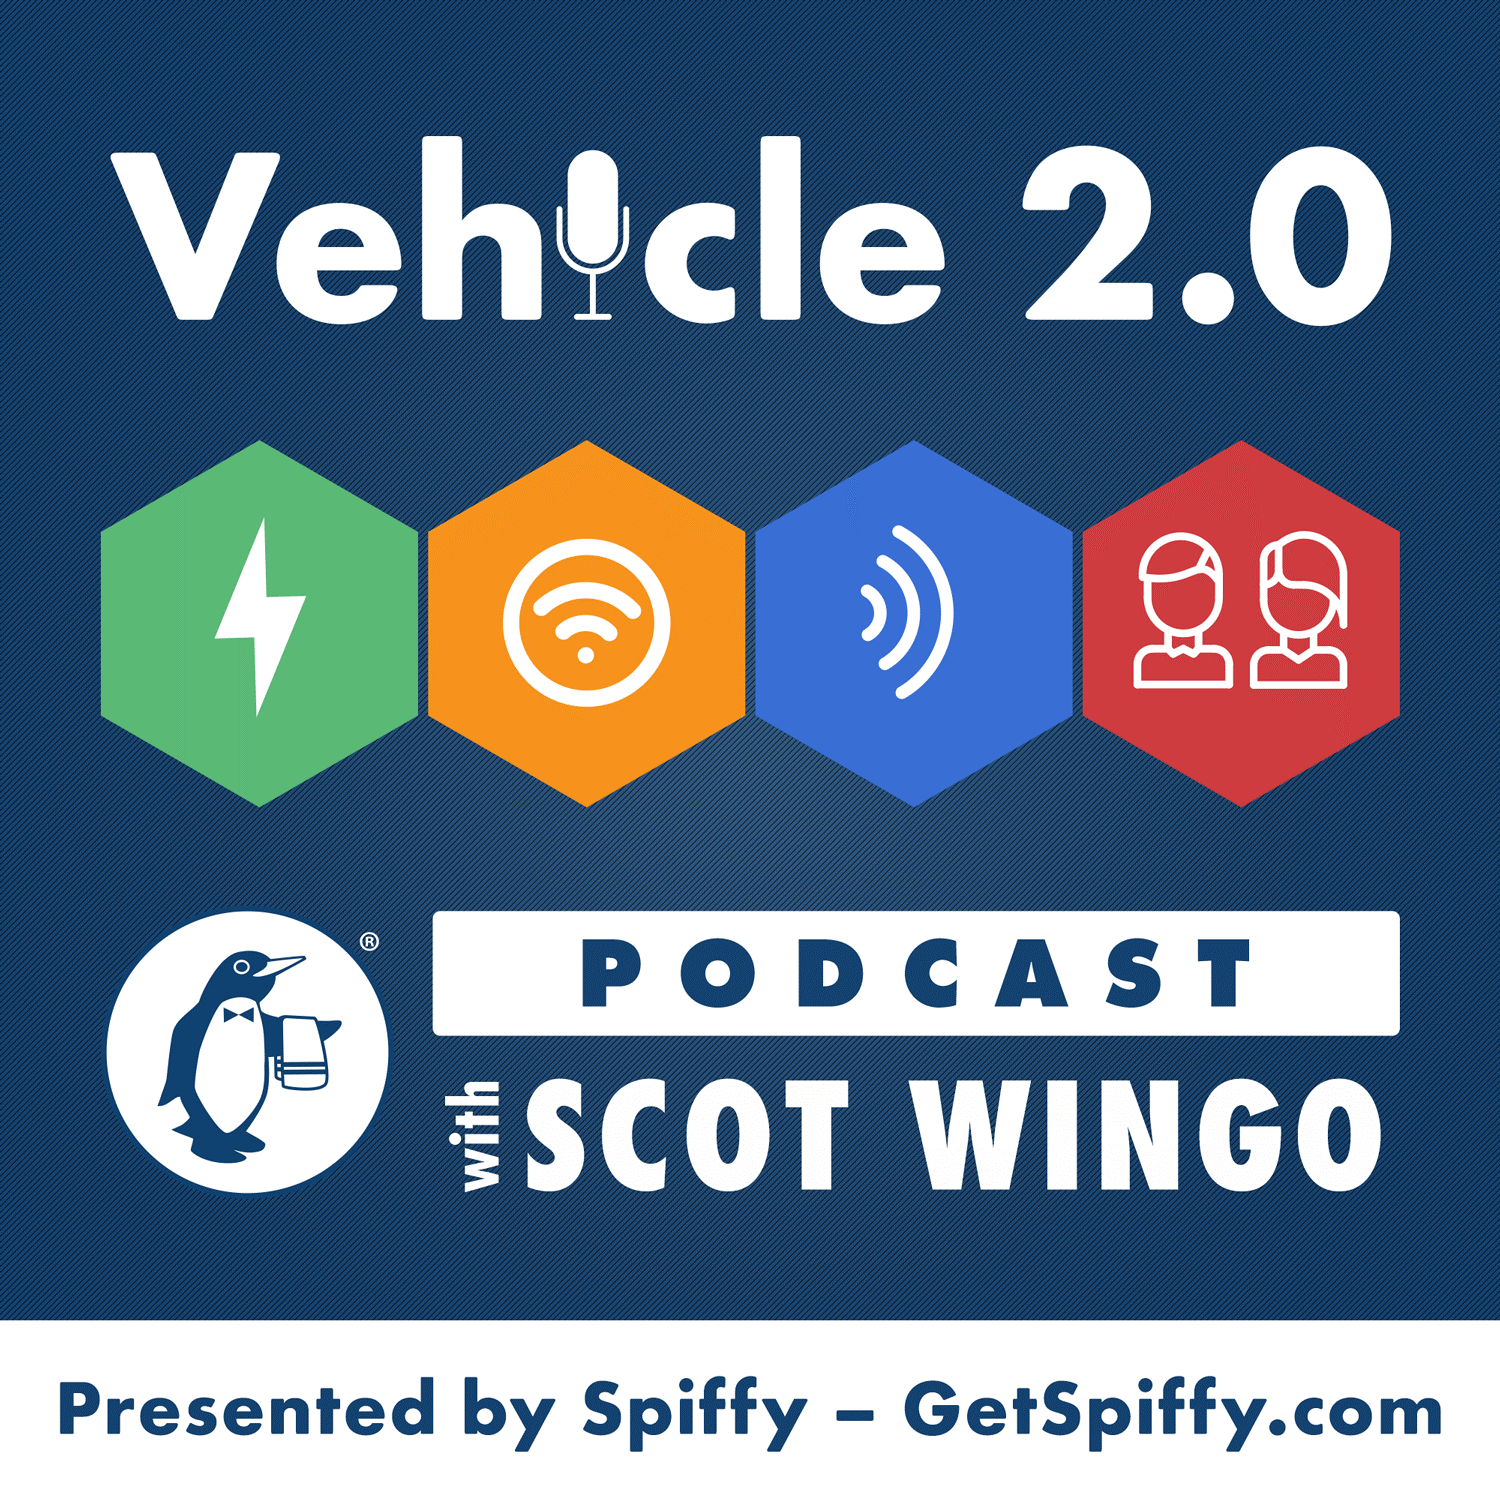 Vehicle 2.0 Podcast with Scot Wingo show art